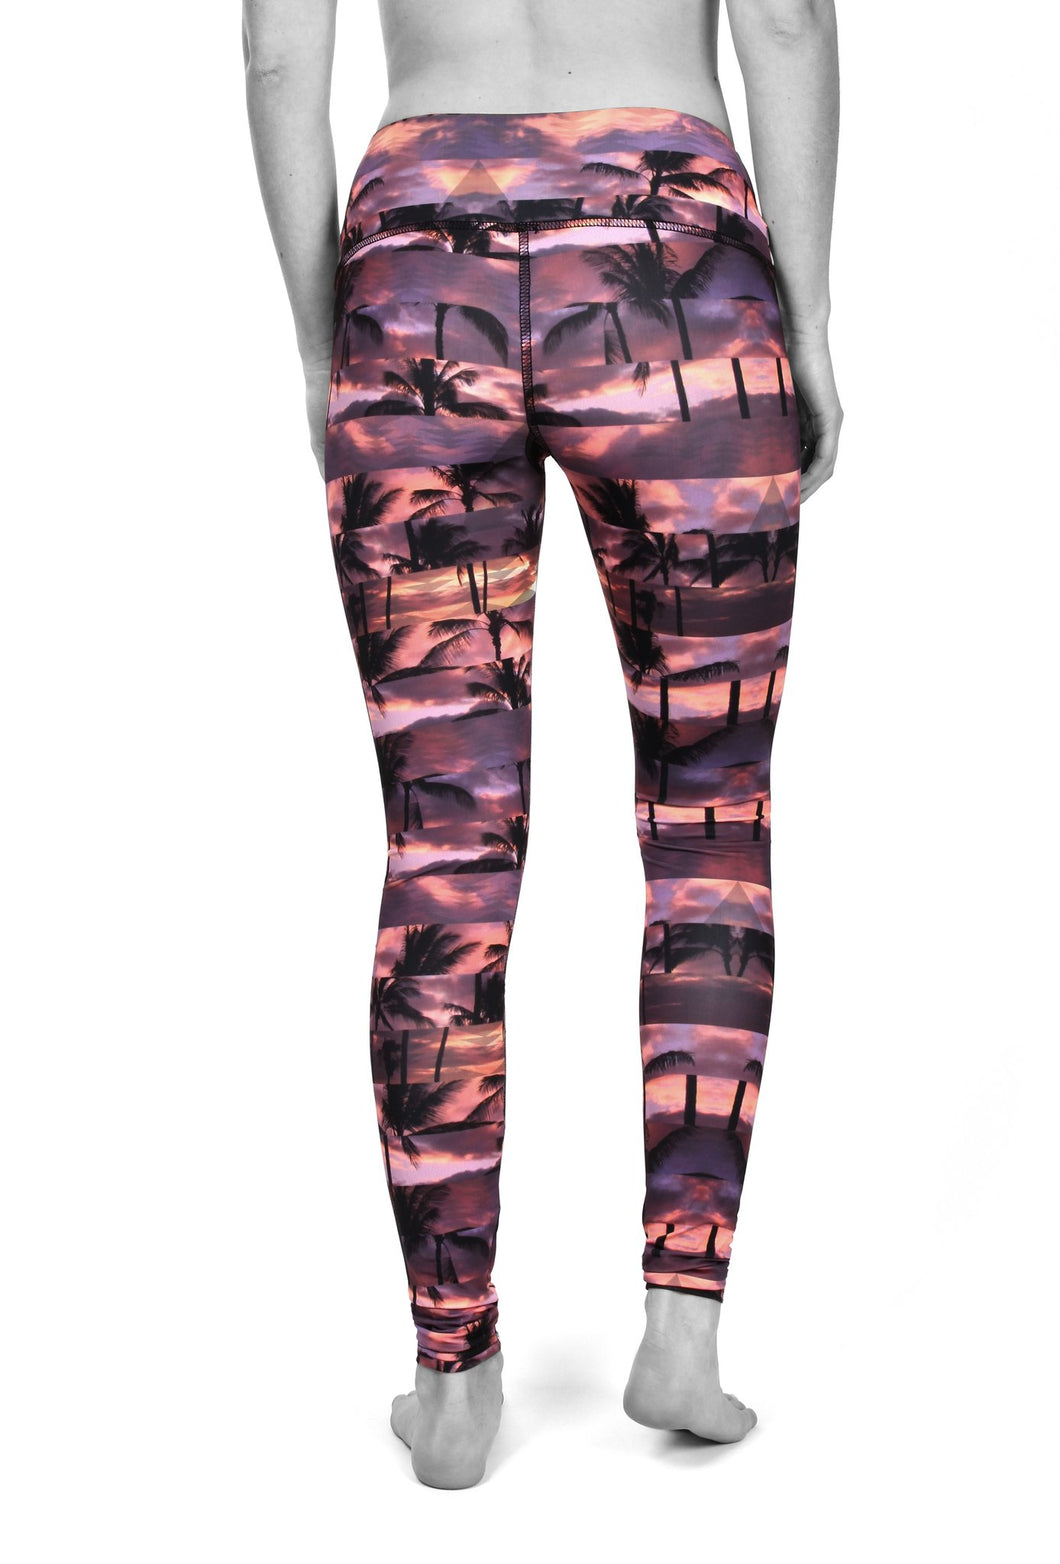 Olas leggings - Tropical Prism